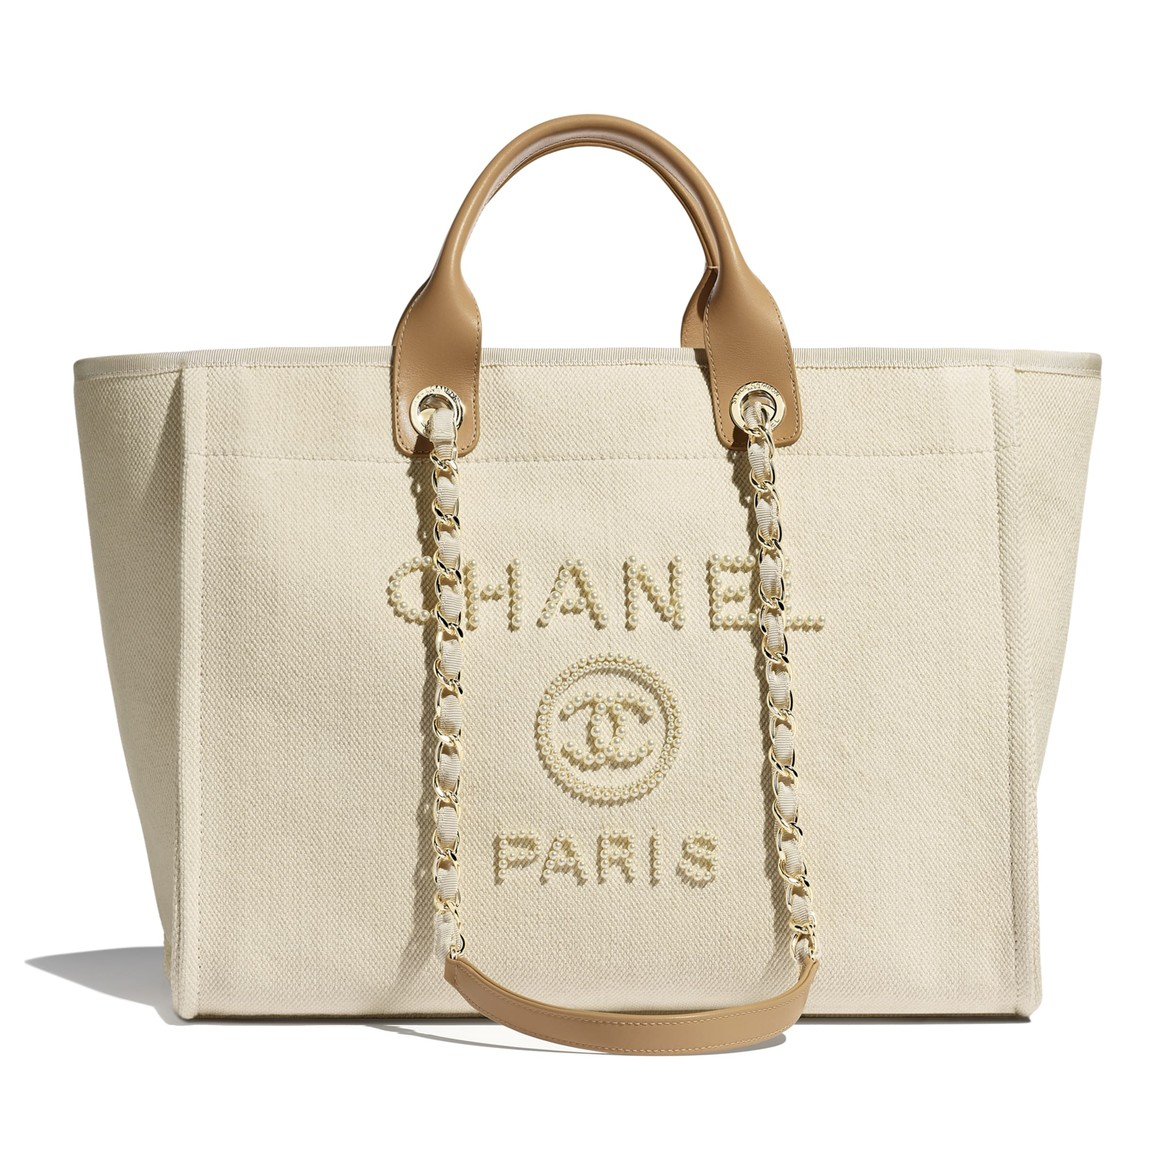 CHANEL shopping bag HK$27,100